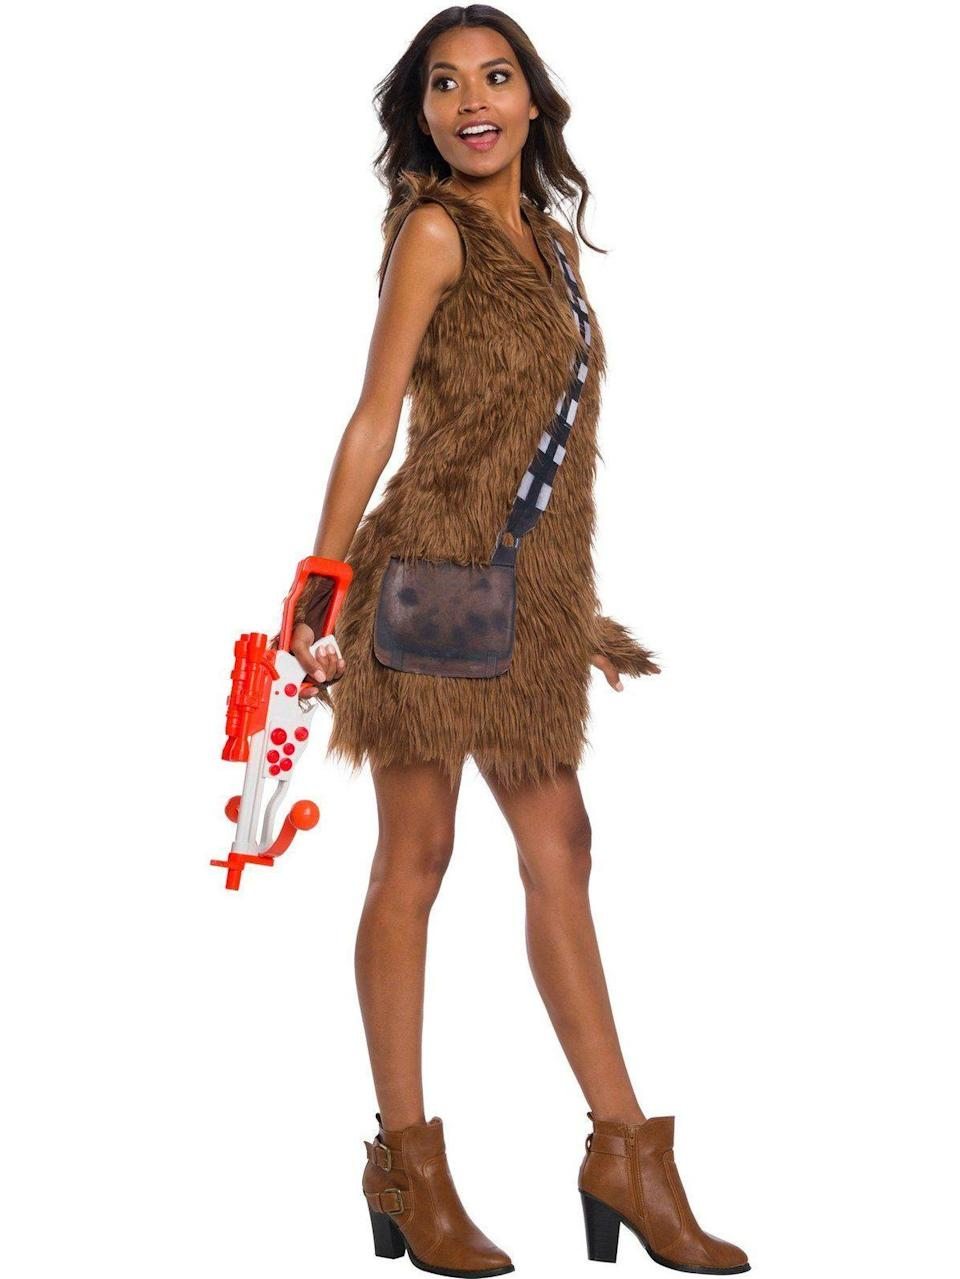 "<p><strong>Wholesale Halloween Costumes</strong></p><p>wholesalehalloweencostumes.com</p><p><strong>$44.90</strong></p><p><a href=""https://www.wholesalehalloweencostumes.com/products/star-wars-classic-chewbacca-dress"" rel=""nofollow noopener"" target=""_blank"" data-ylk=""slk:SHOP NOW"" class=""link rapid-noclick-resp"">SHOP NOW</a></p><p>Because what's sexier than dressing up as a big furry Wookiee? (Bonus points if you can find another <em><a href=""https://www.goodhousekeeping.com/holidays/halloween-ideas/g4560/star-wars-halloween-costumes/"" rel=""nofollow noopener"" target=""_blank"" data-ylk=""slk:Star Wars"" class=""link rapid-noclick-resp"">Star Wars</a> </em>fan to join you in an inflatable <a href=""https://www.amazon.com/dp/B079GJ37PR/?creativeASIN=B079GJ37PR&tag=syn-yahoo-20&ascsubtag=%5Bartid%7C10055.g.4558%5Bsrc%7Cyahoo-us"" rel=""nofollow noopener"" target=""_blank"" data-ylk=""slk:&quot;Han Solo in Carbonite&quot; suit"" class=""link rapid-noclick-resp"">""Han Solo in Carbonite"" suit</a>.) </p>"